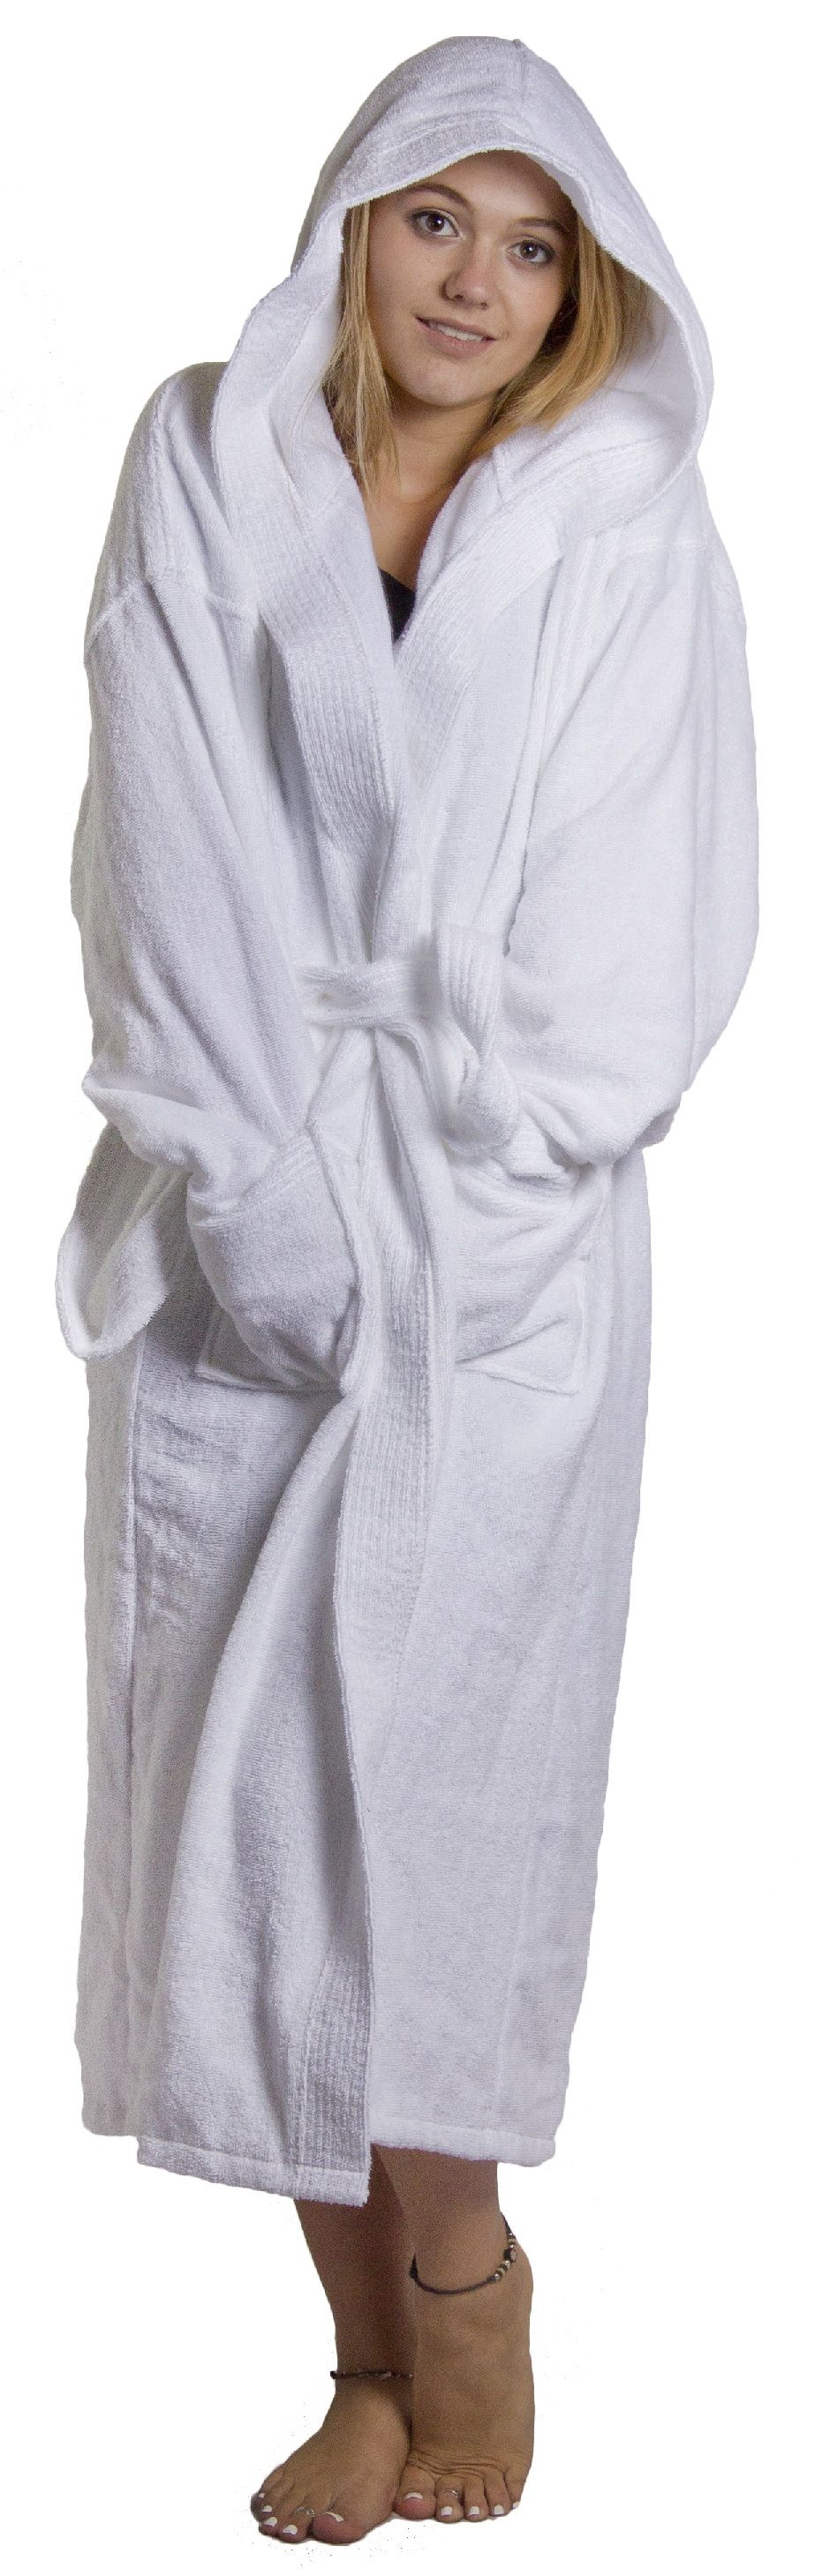 Bathrobe hooded robe 100% cotton plus xl 2xl 3xl 4xl mens ladies ... d556033ba